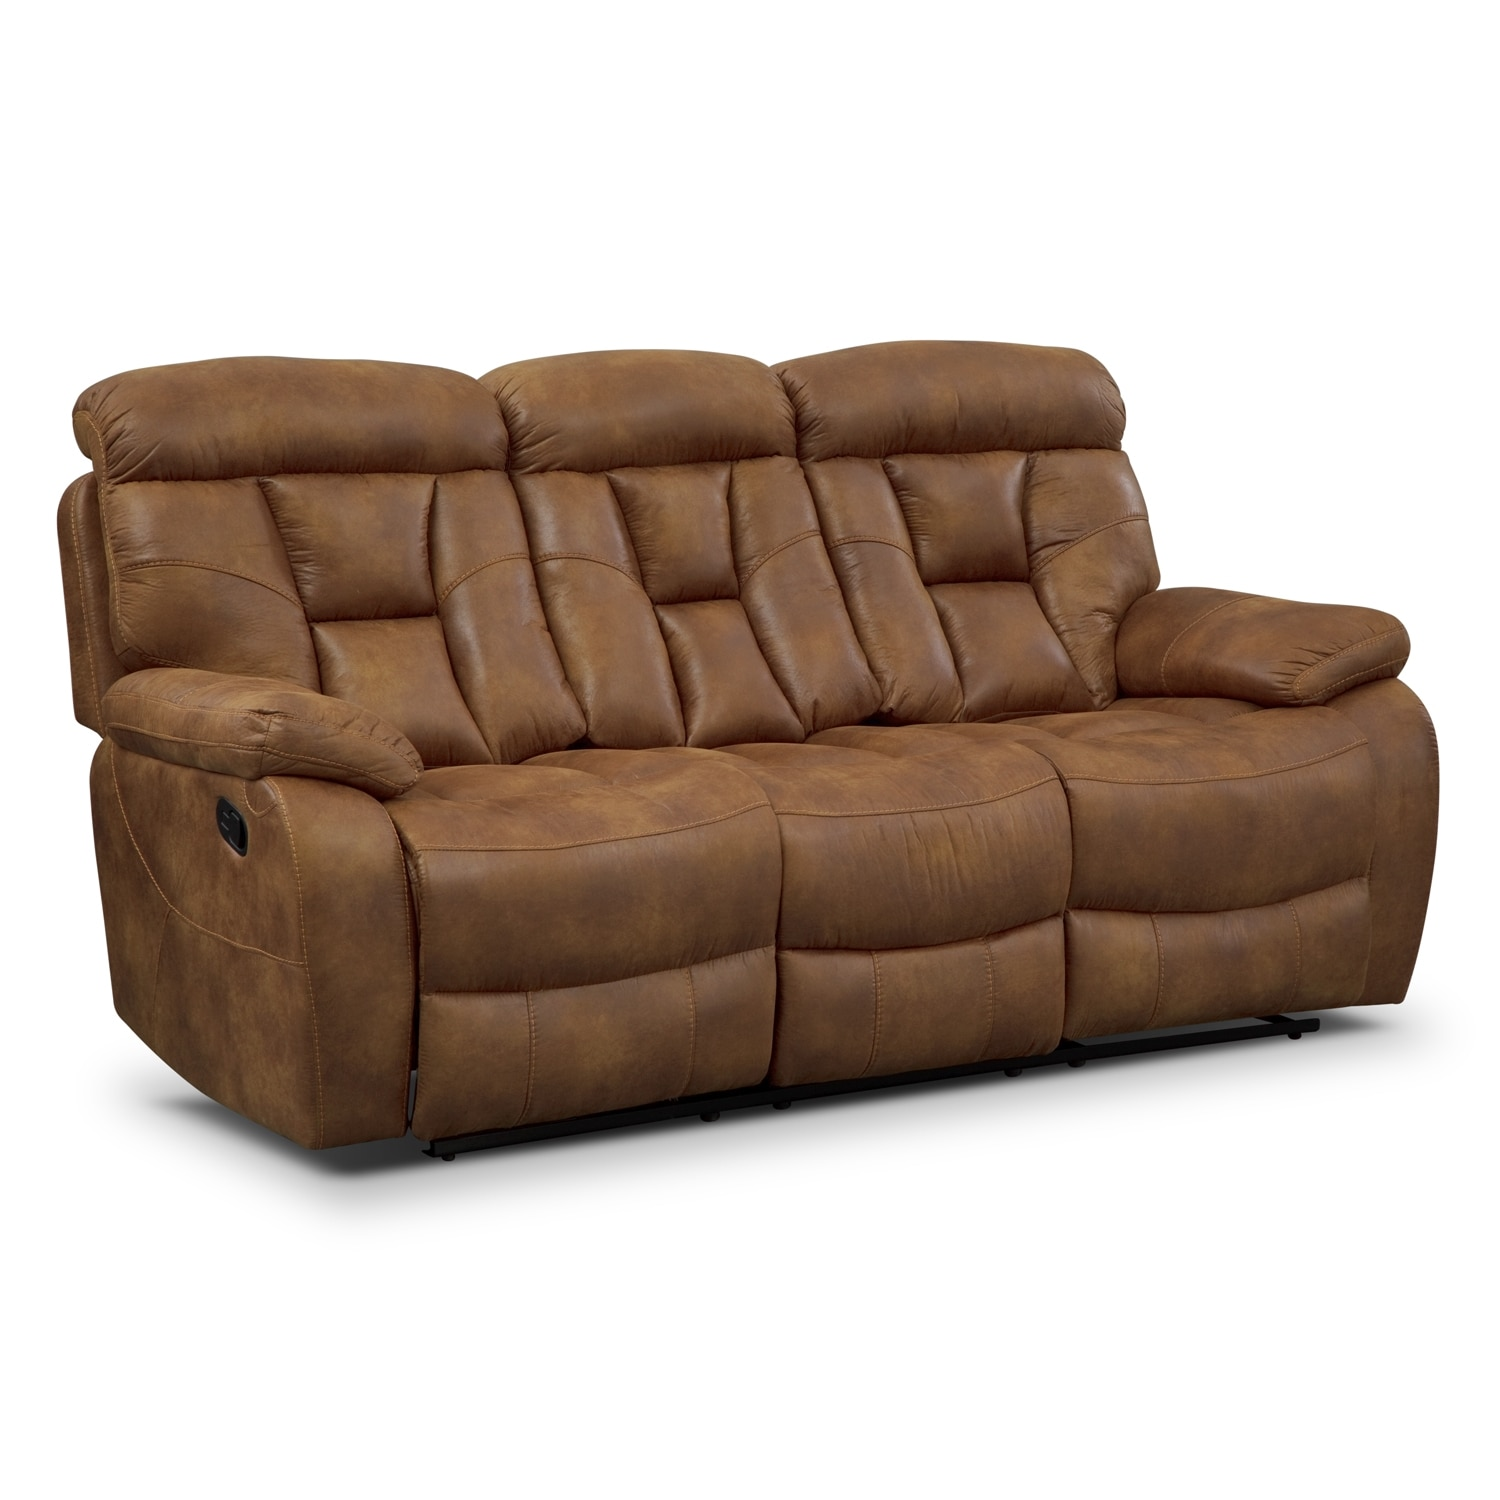 Dakota II Reclining Sofa